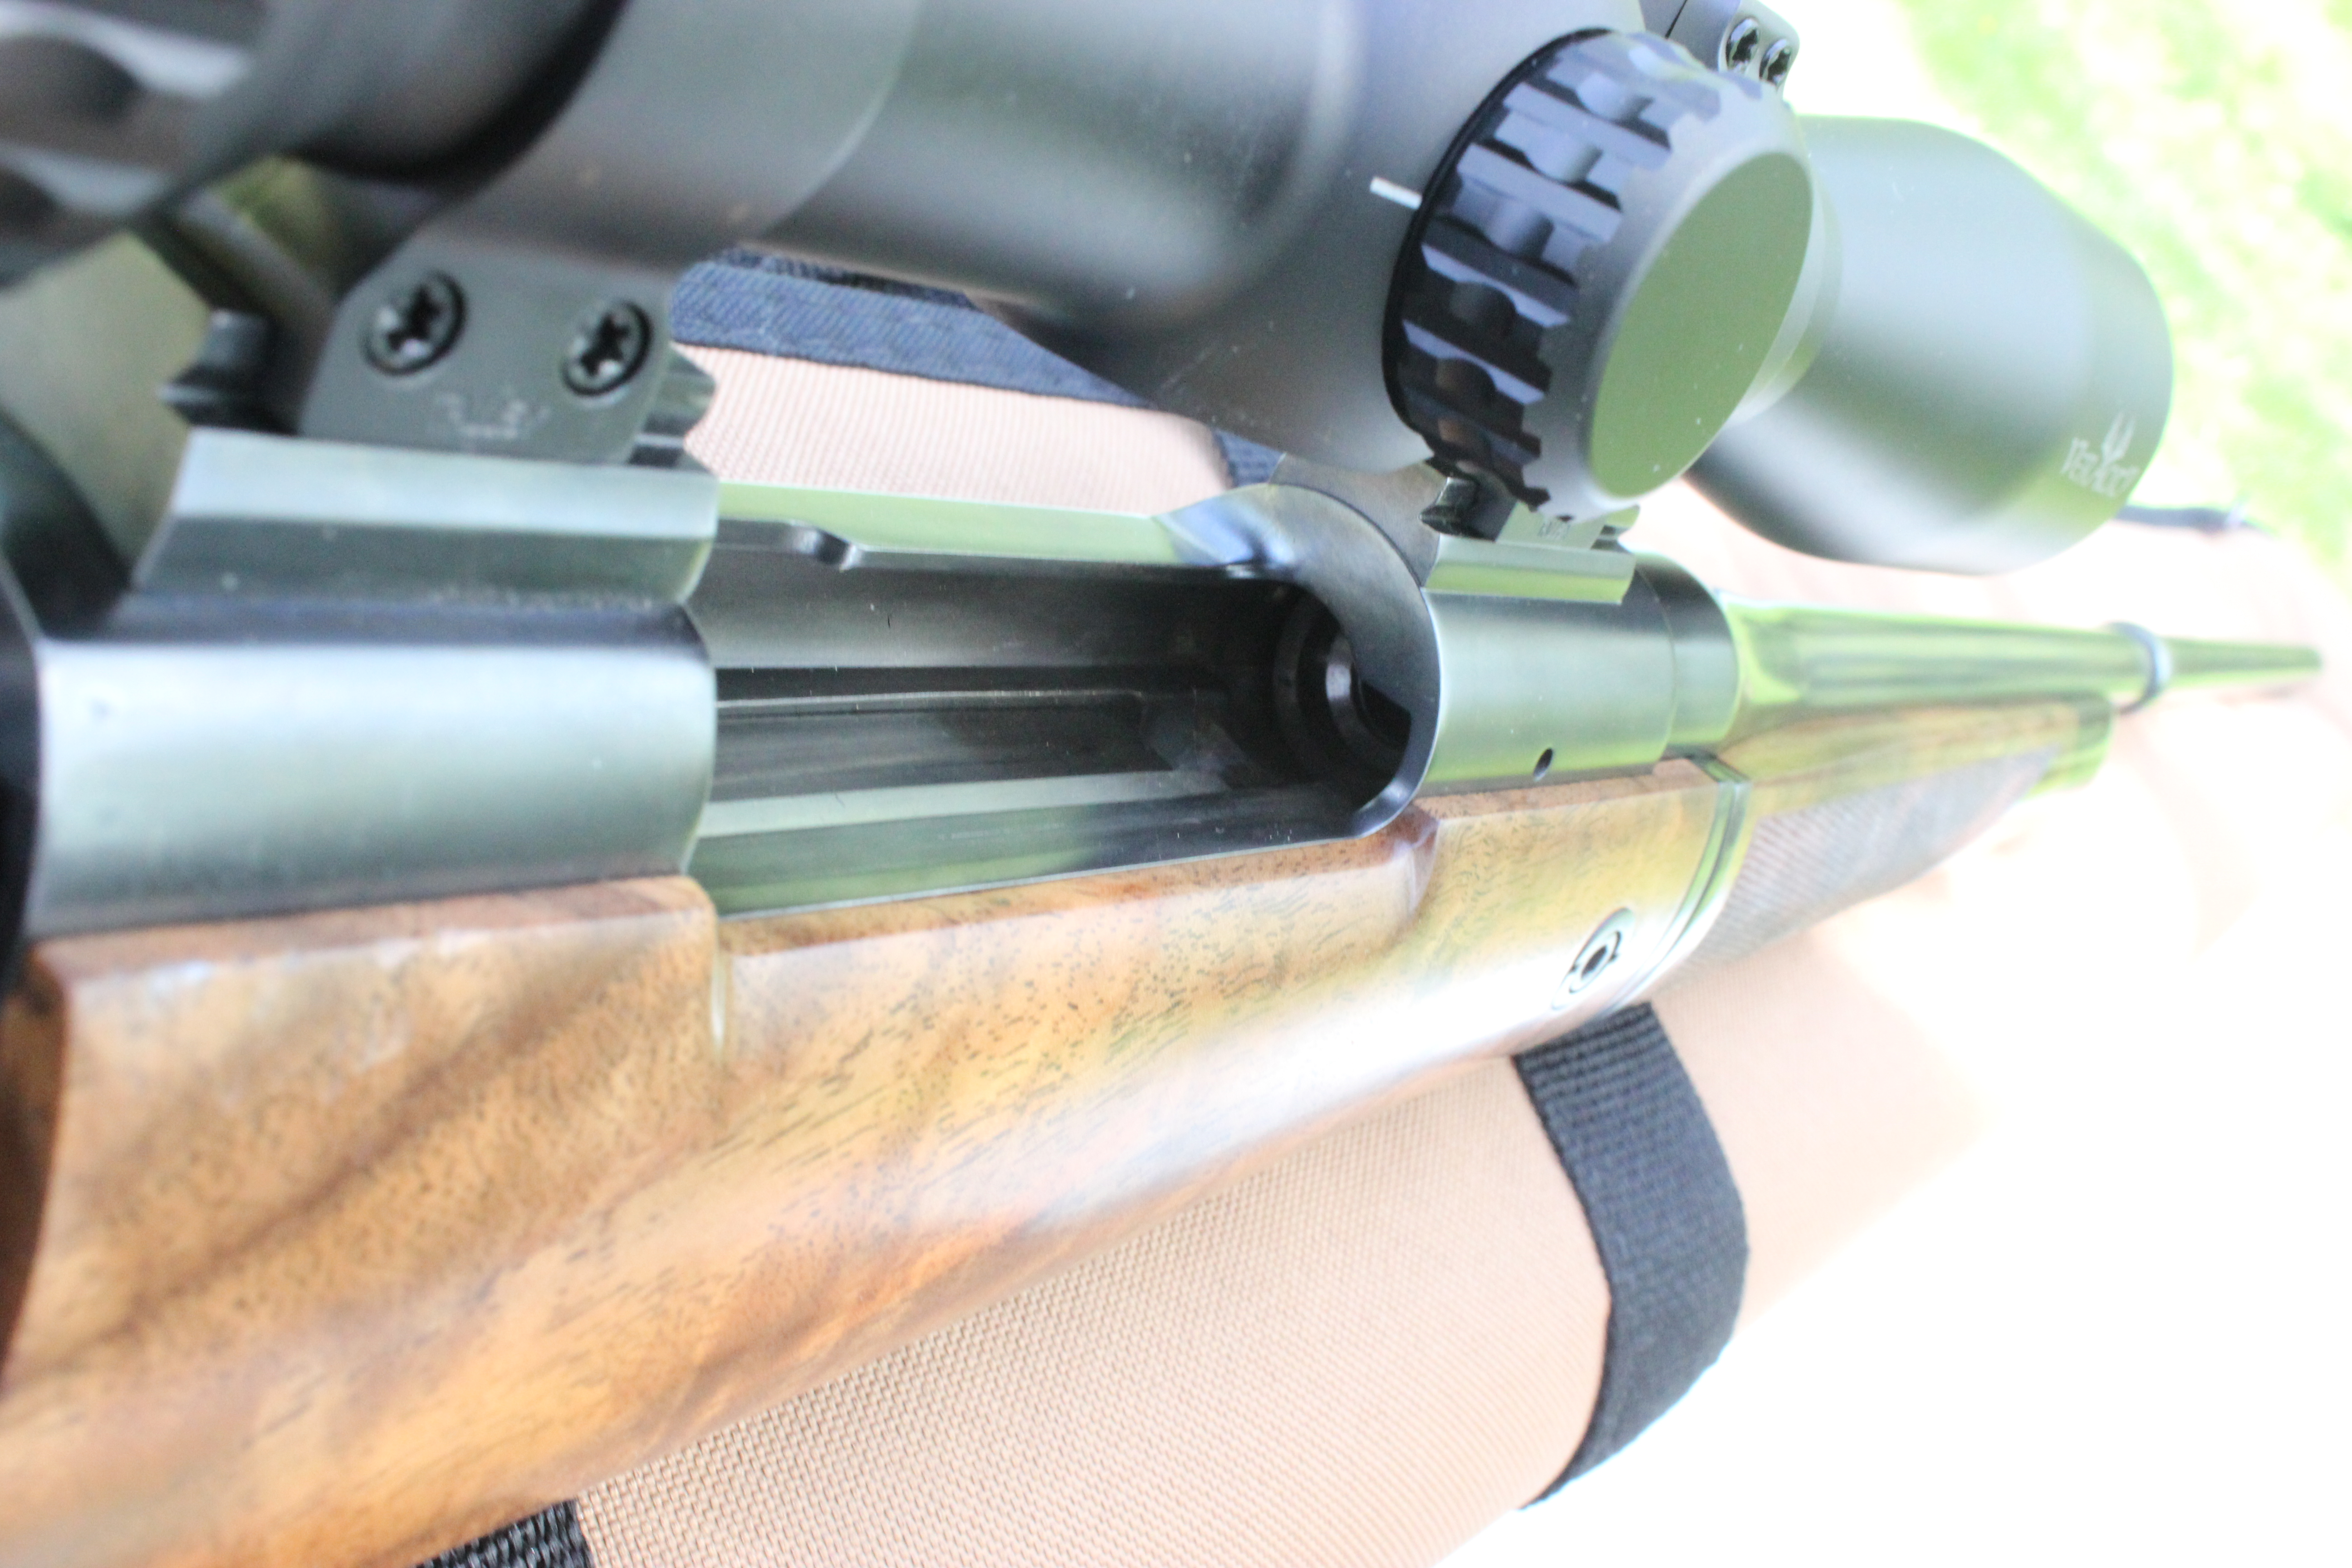 Not Only Must Your Gun Be Unloaded When Bore Sighting, Unless You're Using